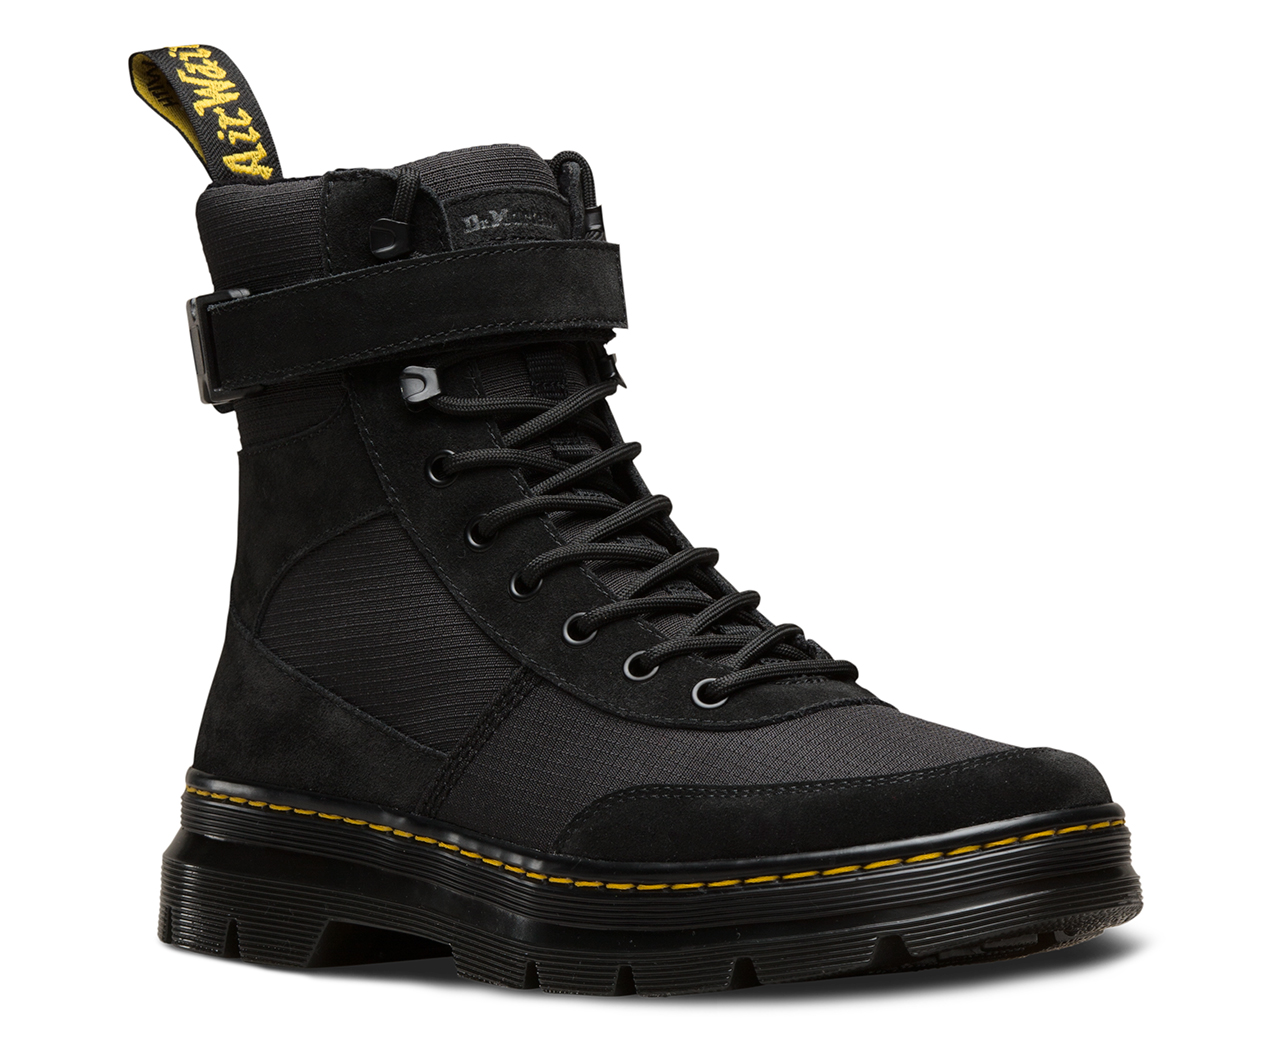 Combs Tech Aw18 Dr Martens Official Site